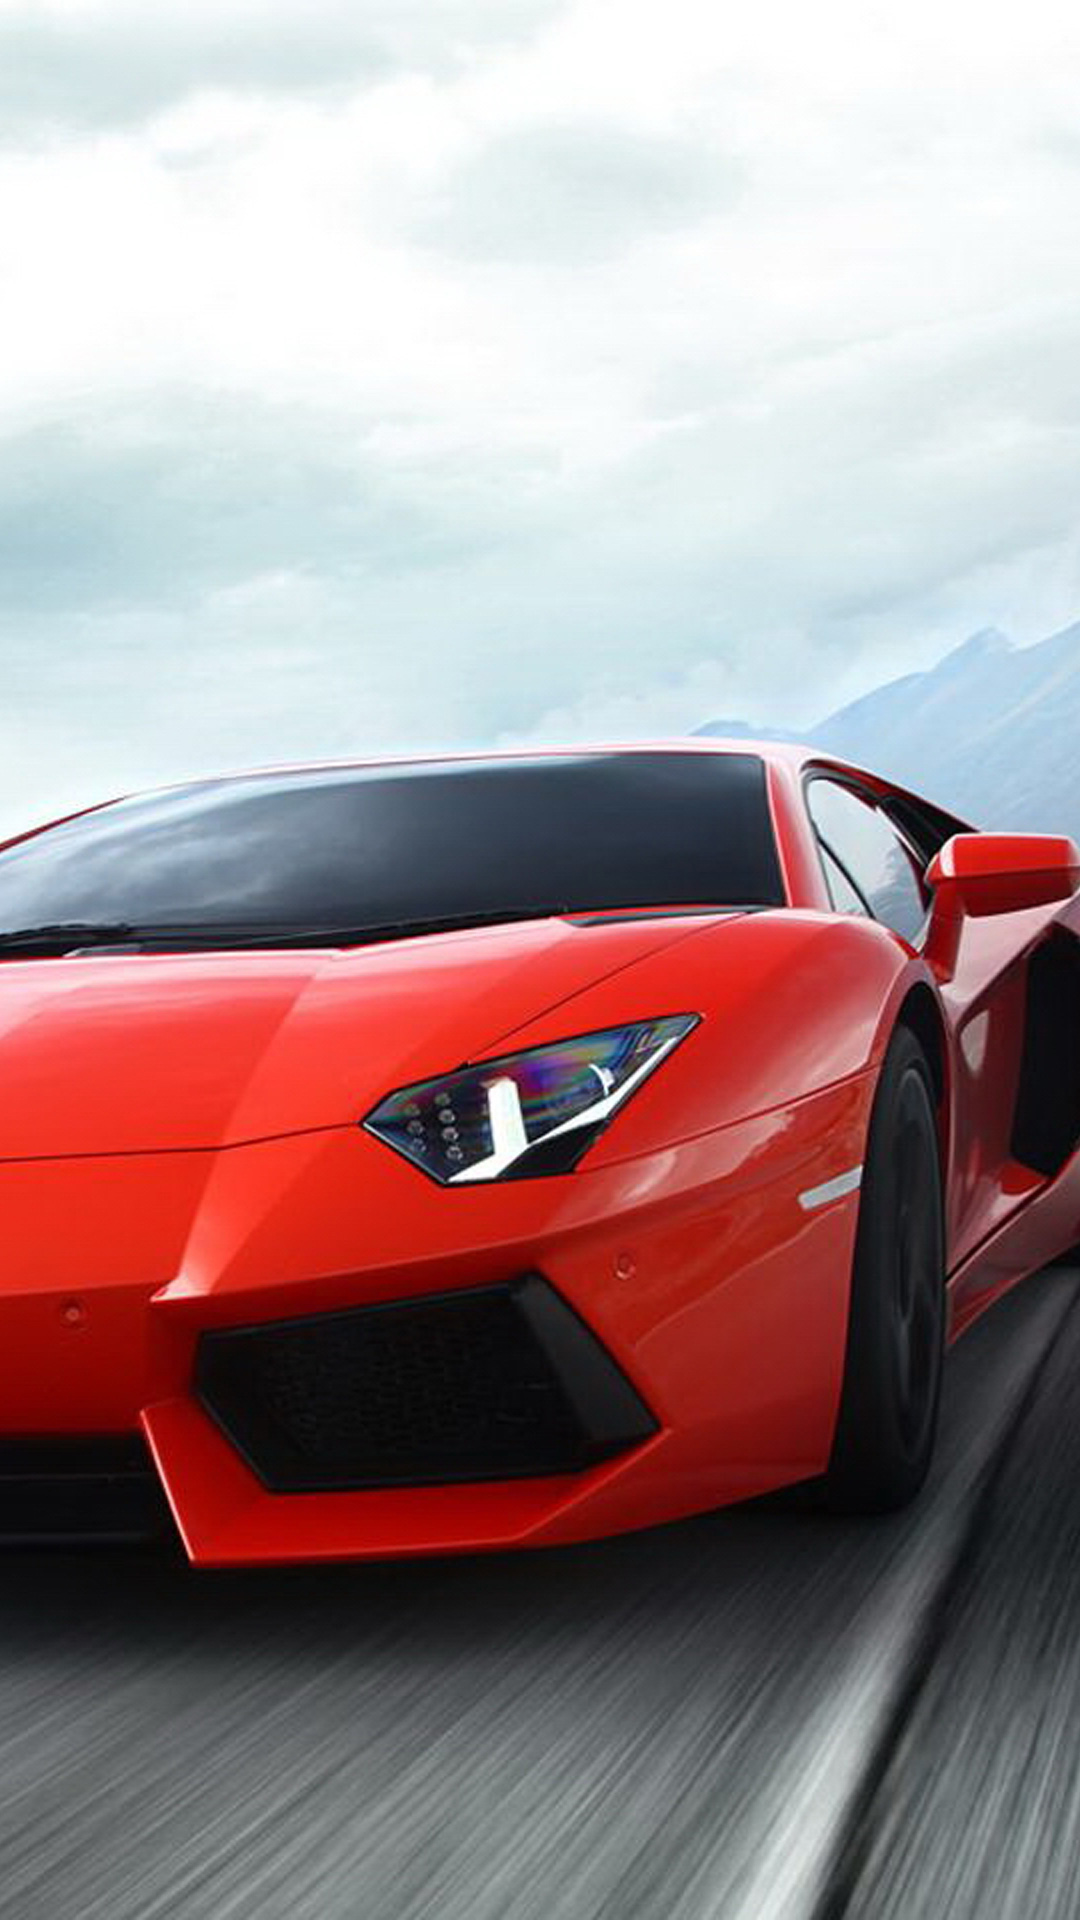 Sports wallpapers beautiful red sports car wallpapers for galaxy s5 supportive guru - Car wallpapers for galaxy s5 ...